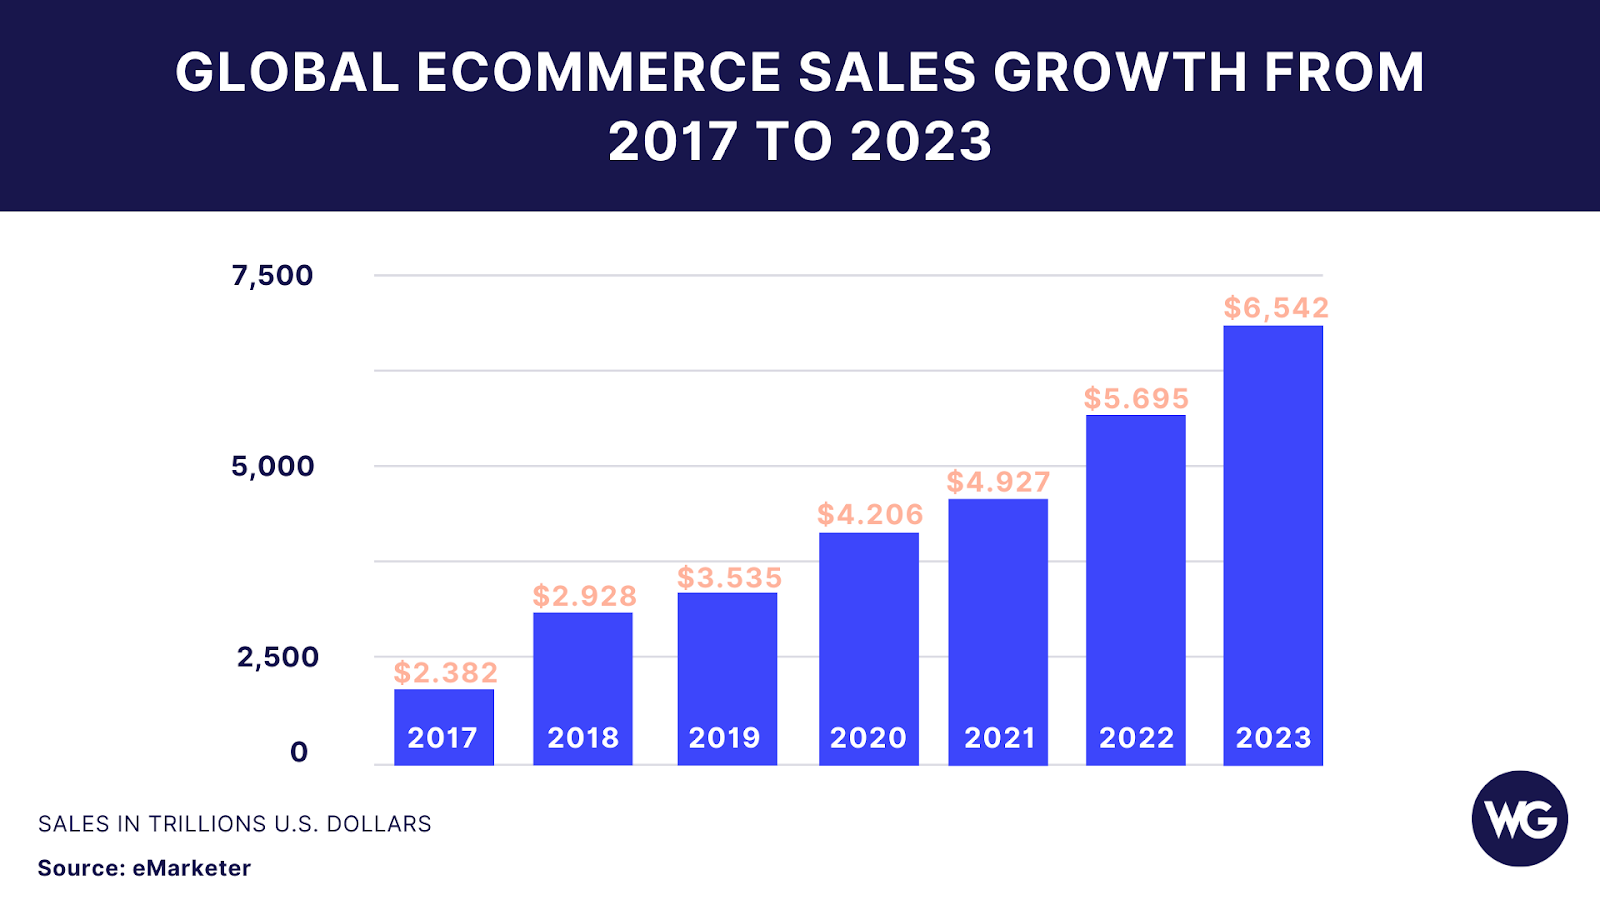 Graphic of global ecommerce sales growth from 2017 to 2023